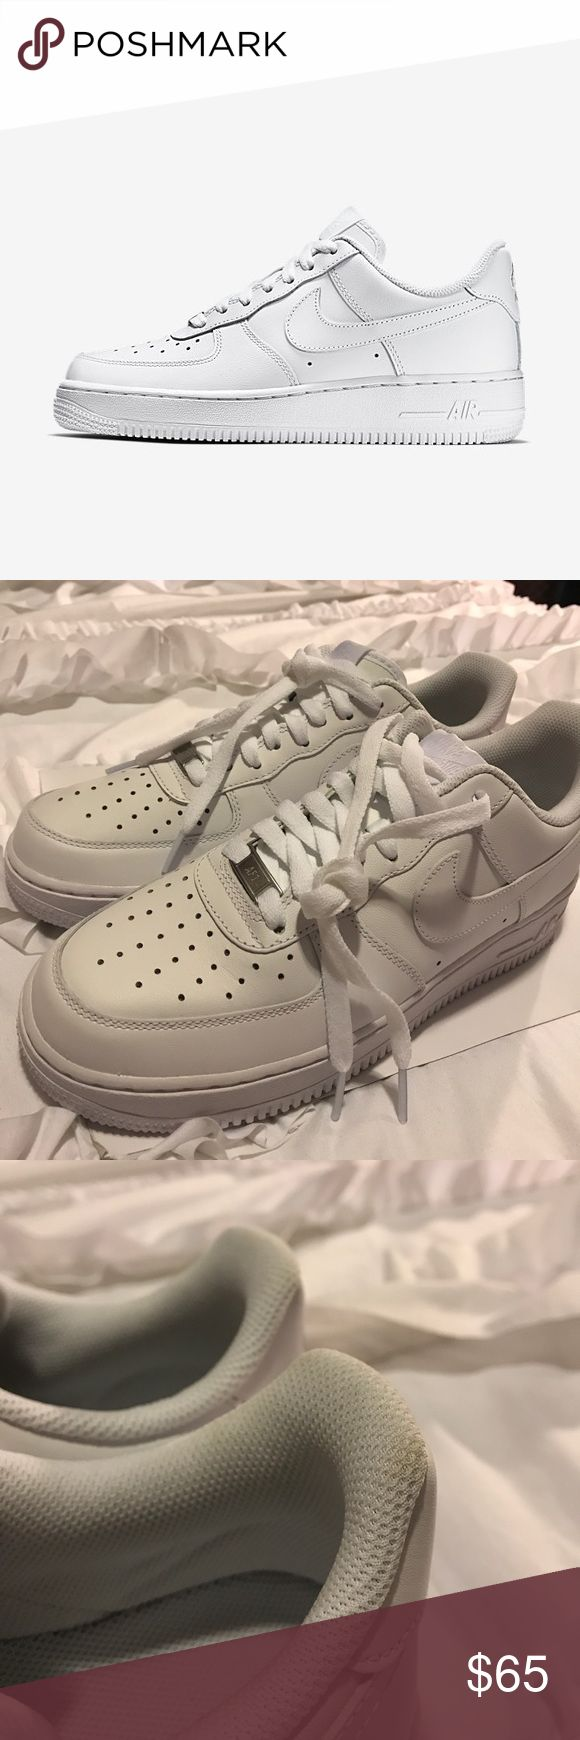 ♡ NIKE AIR FORCE 1 07 ♡ Brand new all white iconic and original staple! No flaws except for slight smudge show in last picture. Only worn for try on. Nike Shoes Athletic Shoes